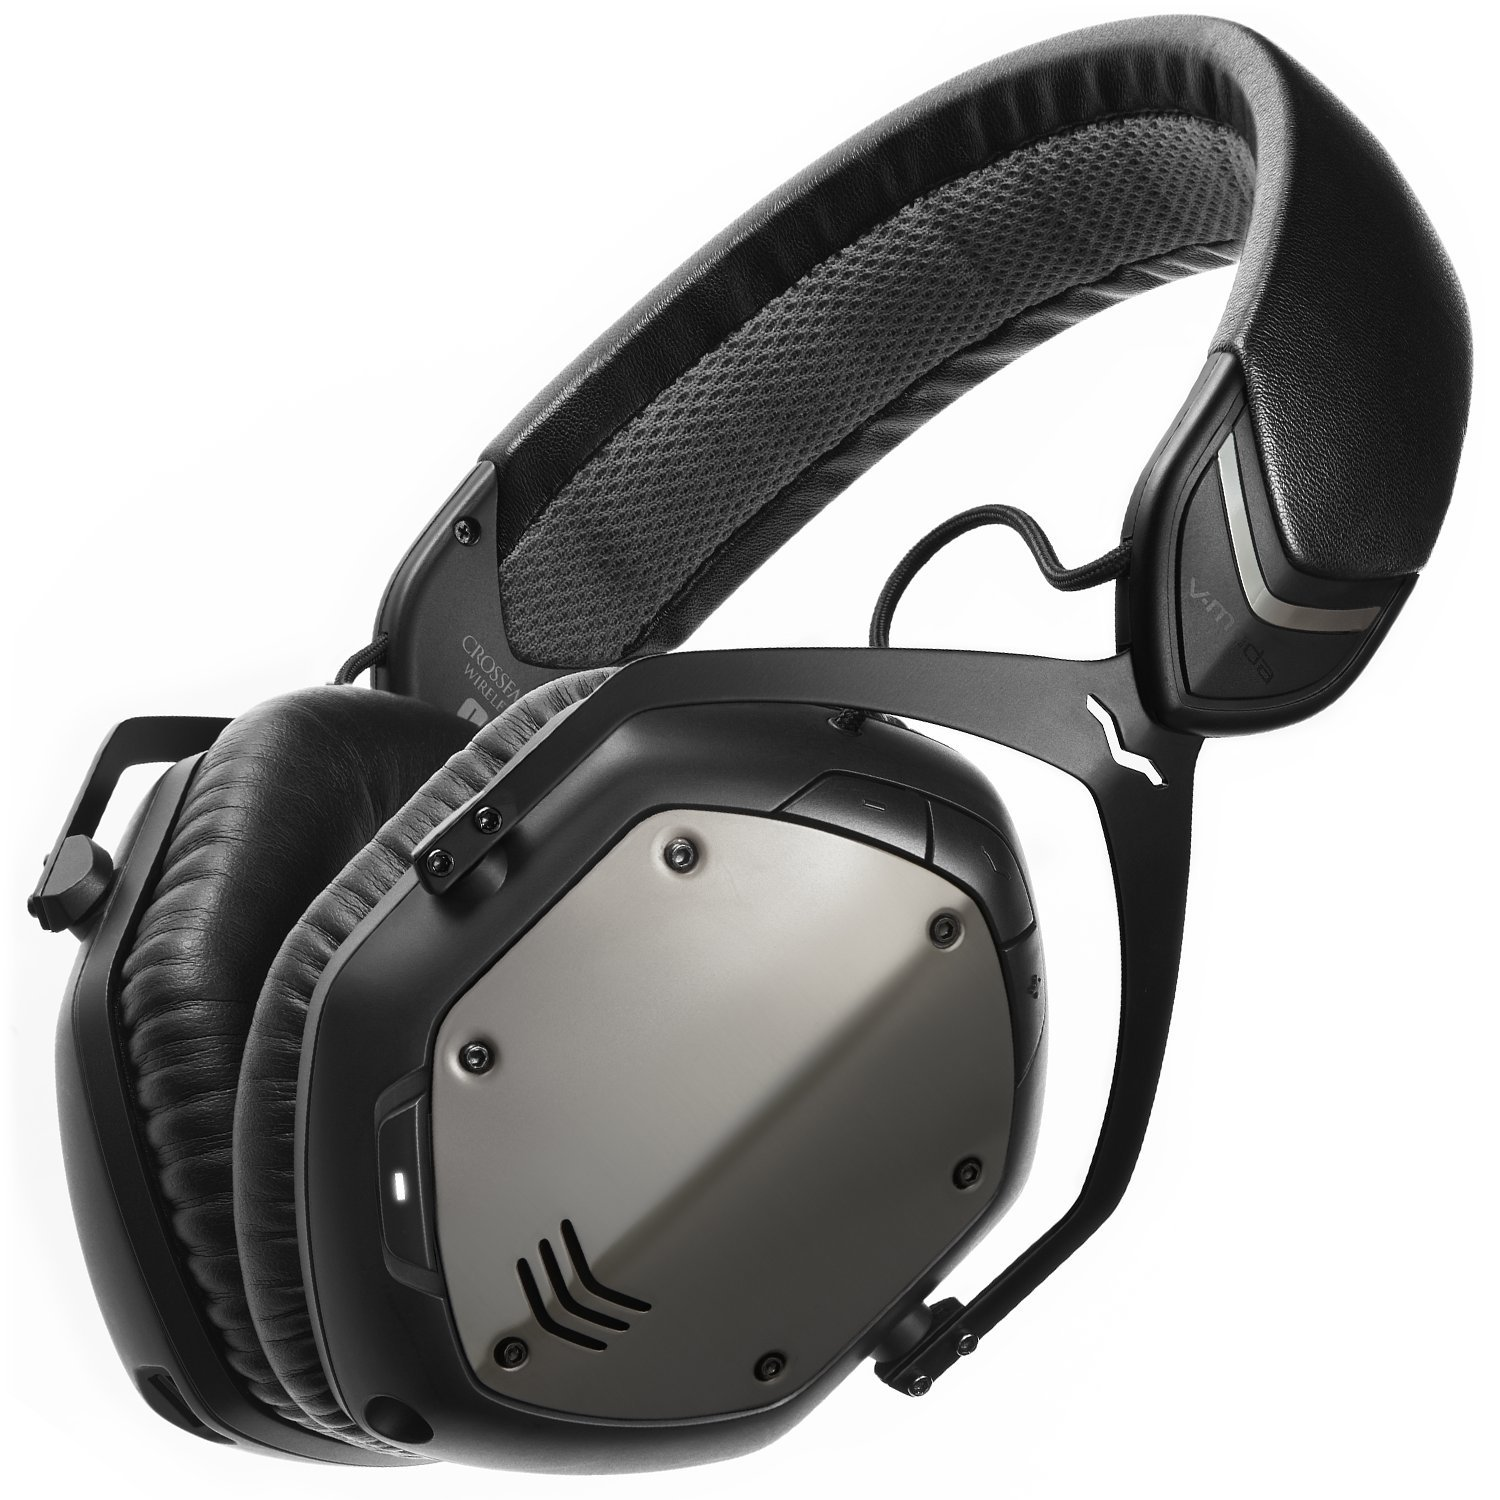 V-MODA Crossfade Wireless Over-Ear Headphone - Gunmetal Black